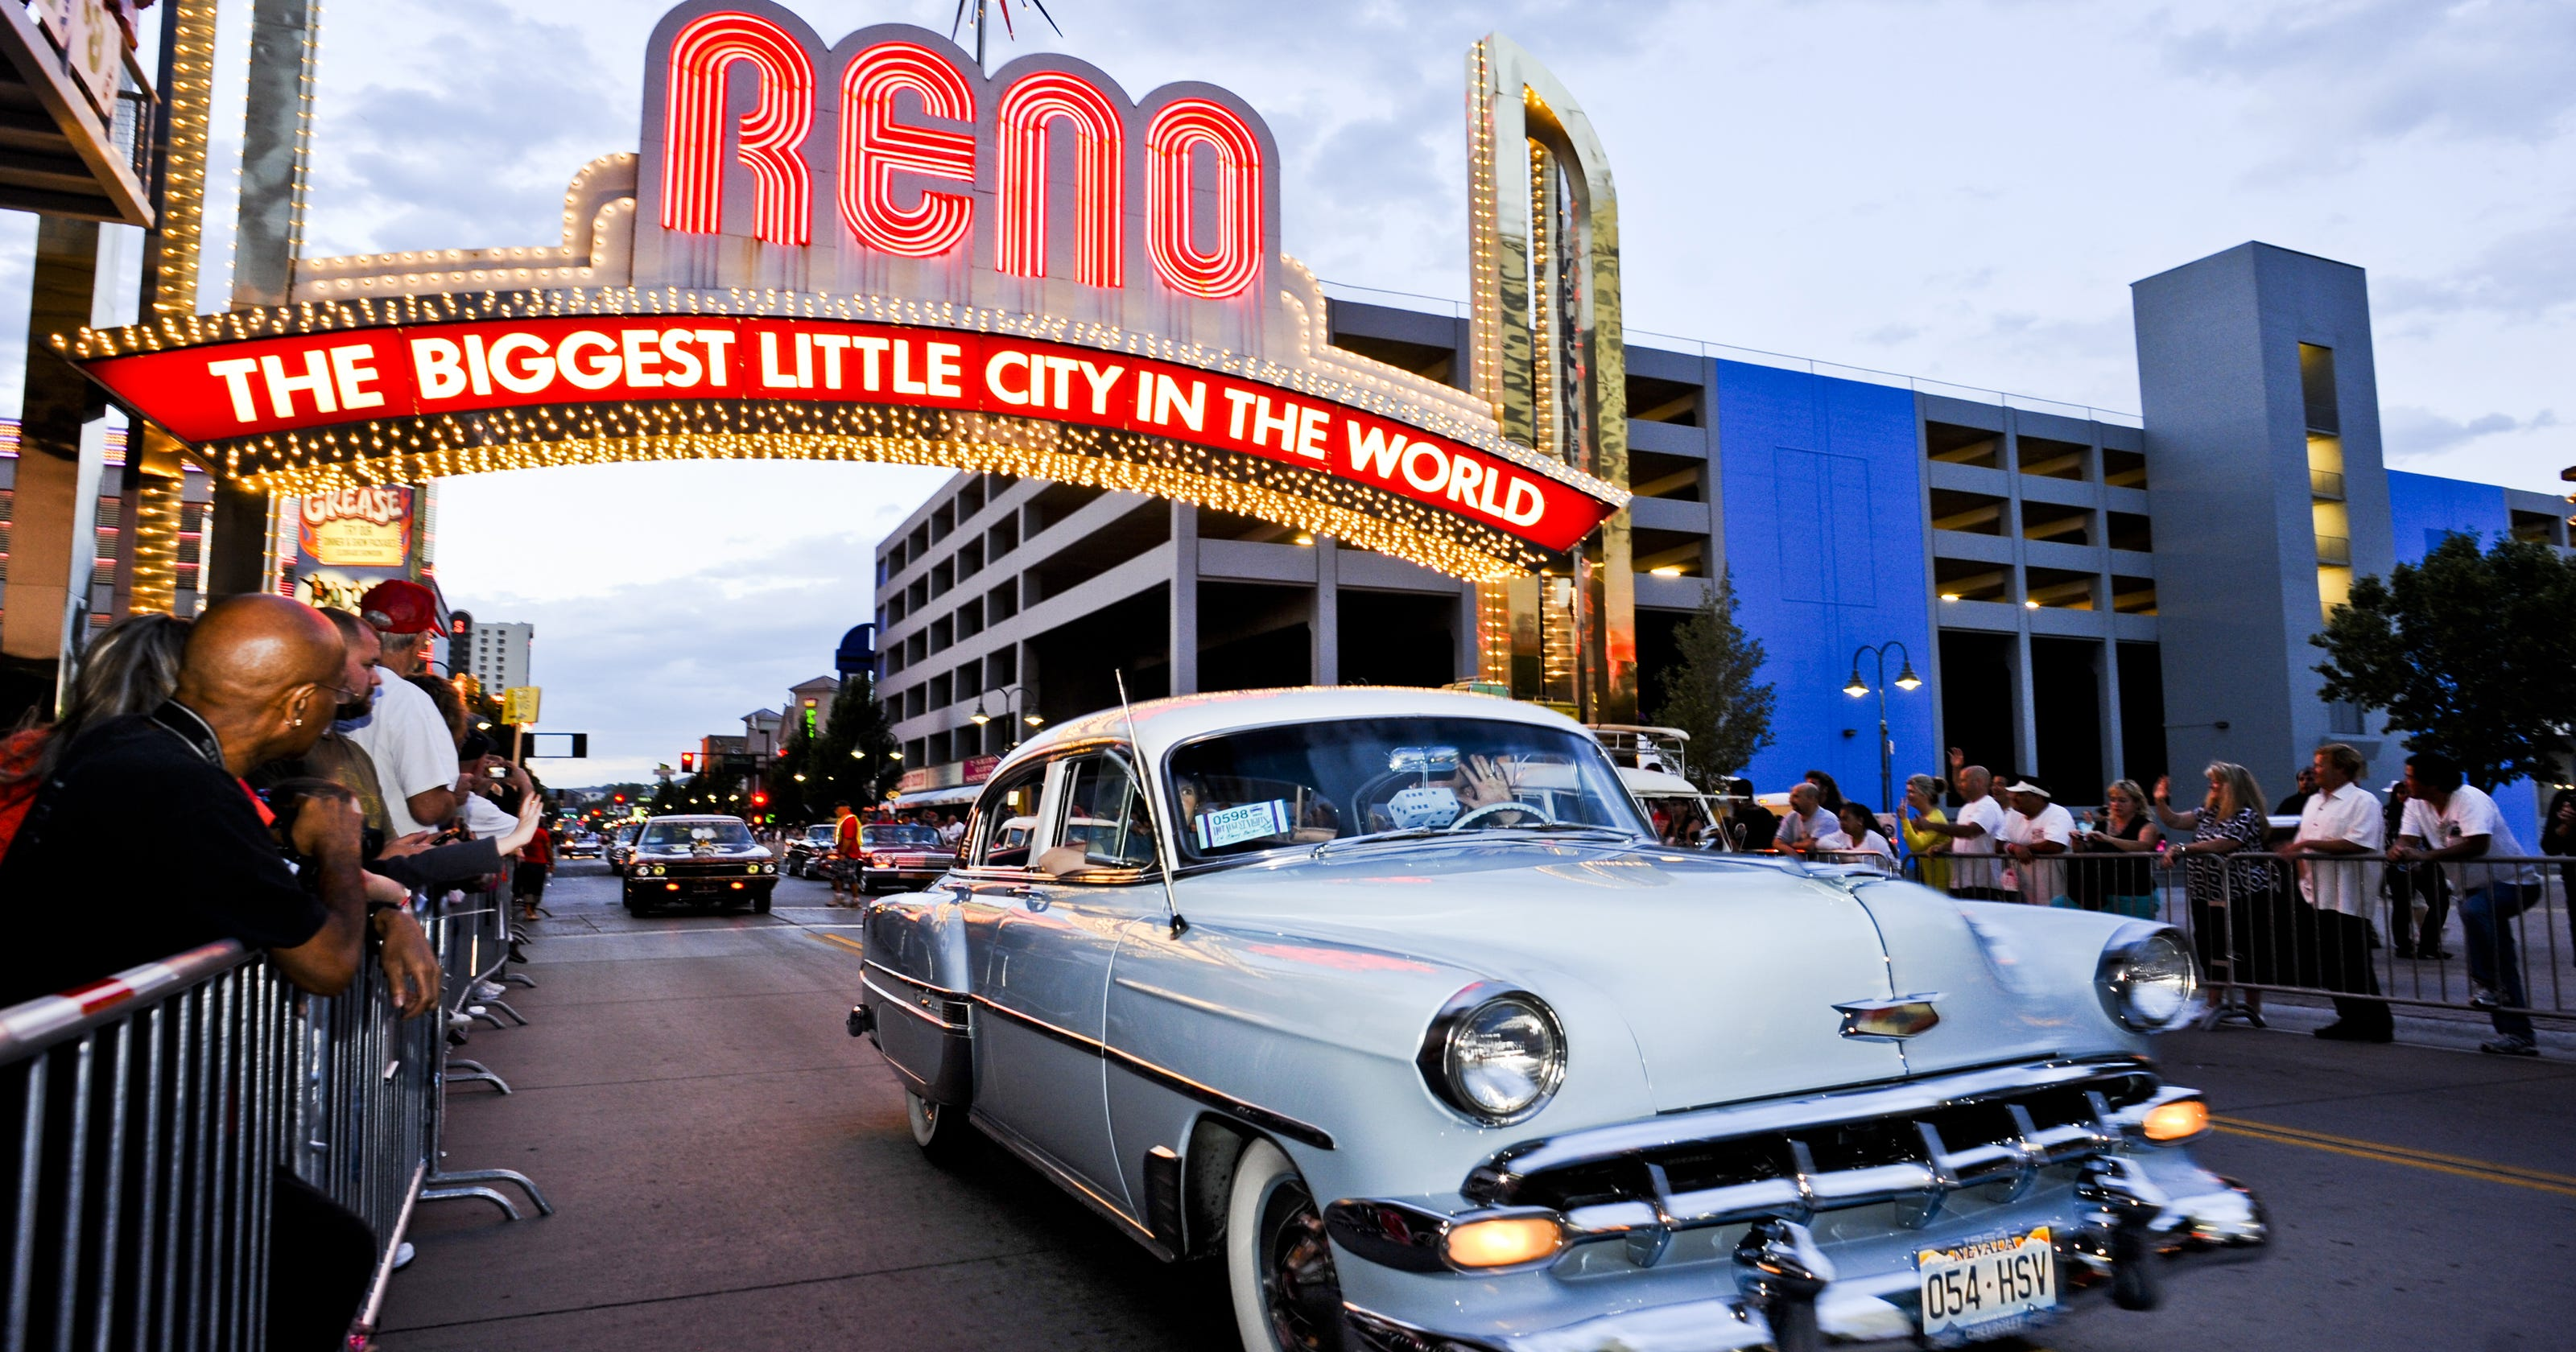 Hot August Nights Weekend Schedule - Car show reno sparks convention center